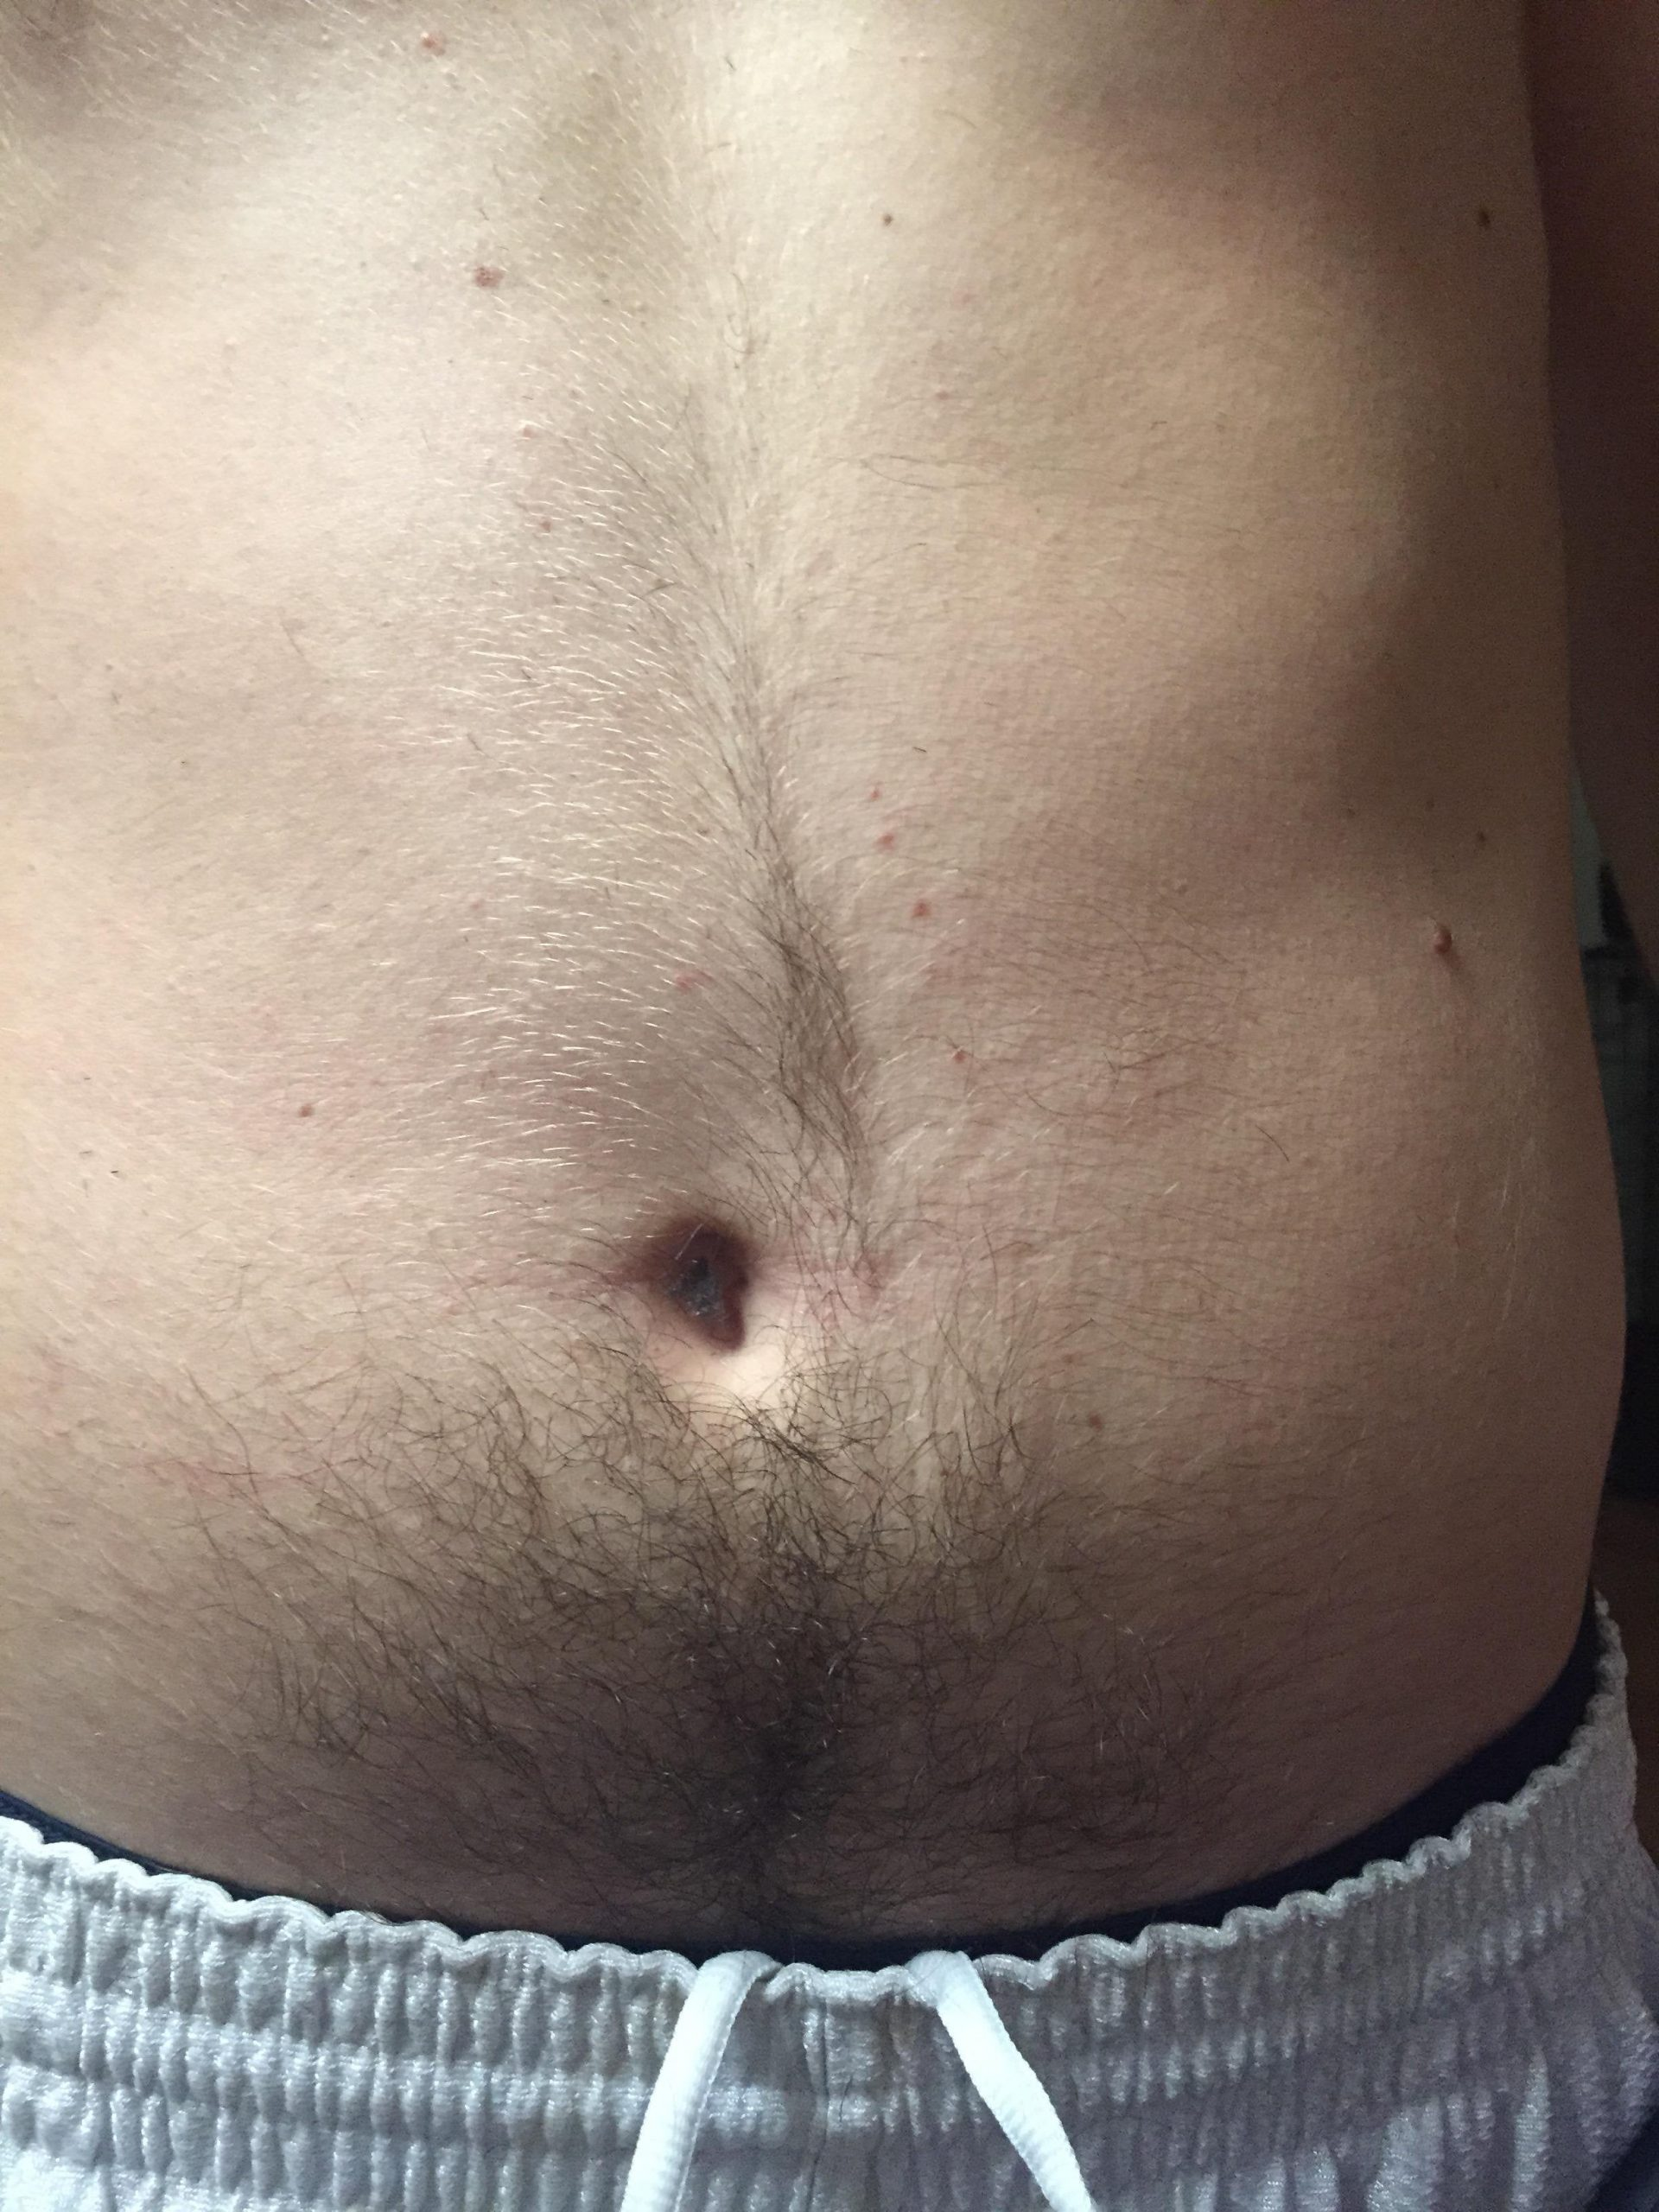 The Craziest Belly Buttons Ever